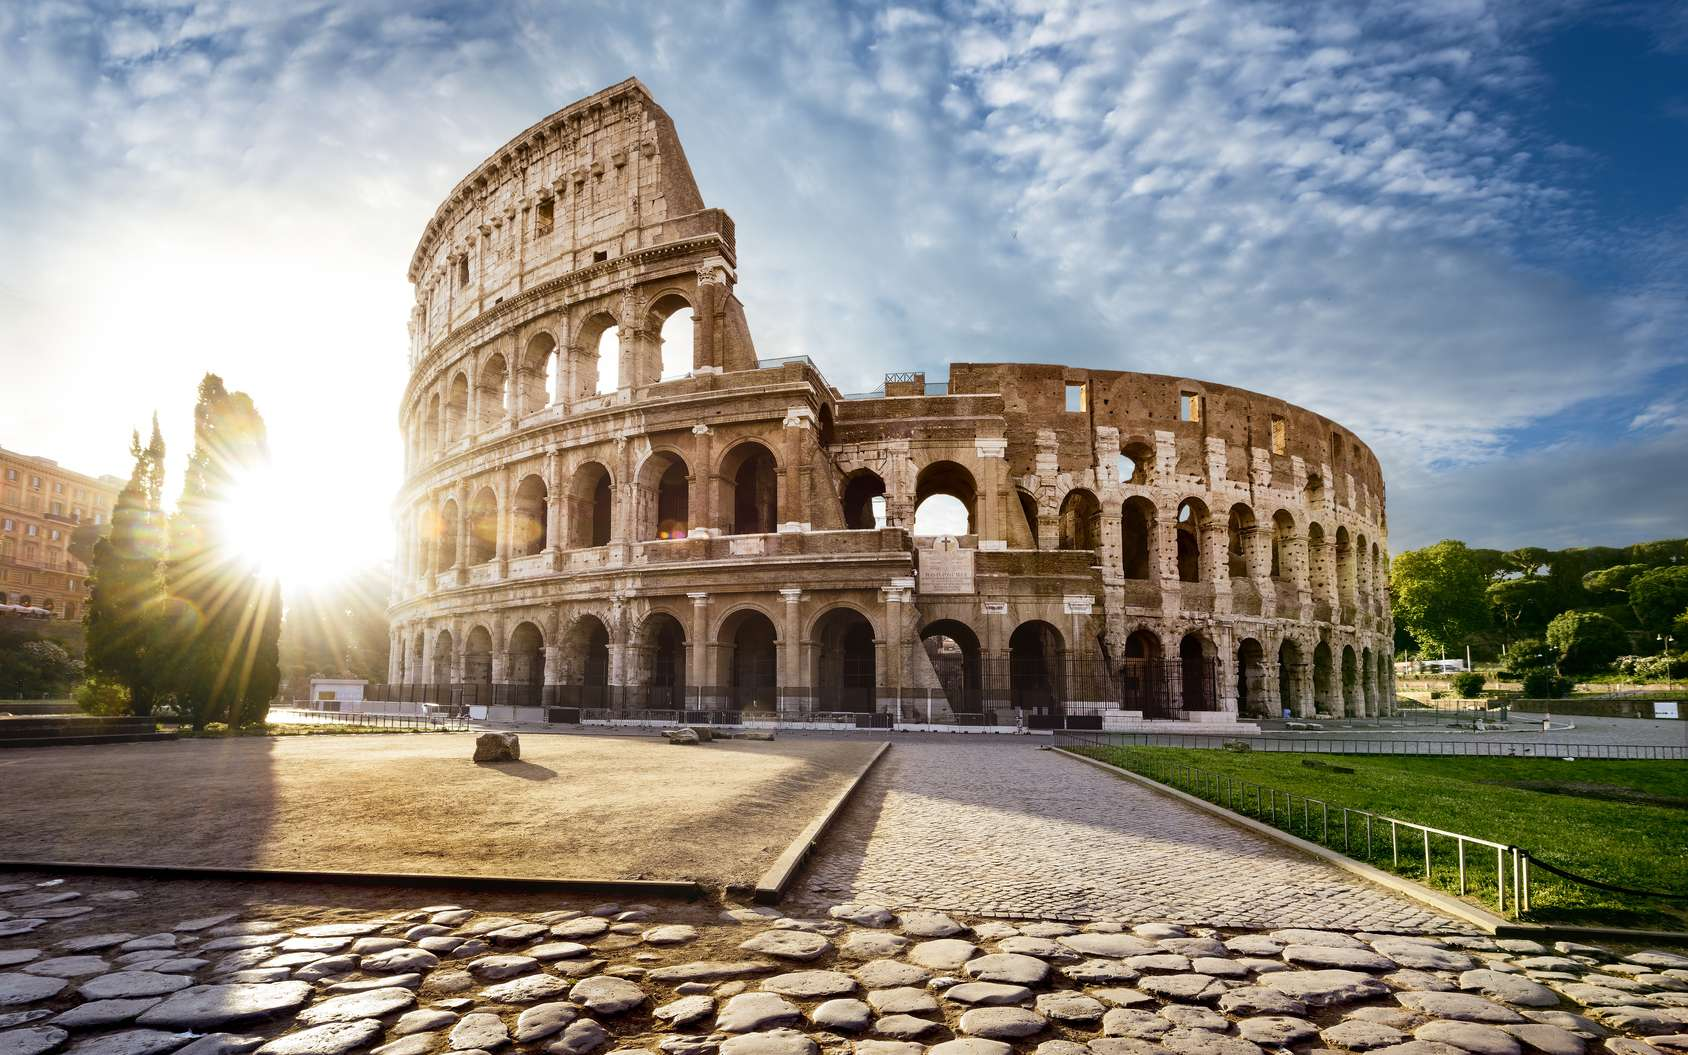 day 3 - Rome is known for its rich history, legends, and tales. Today is the day you'll get to experience this city and its ancient ruins from a historical perspective. You will visit the Vatican, Colosseum, Trevi fountain and much more. You will walk a lot today so plan to be comfortable and get ready to learn.